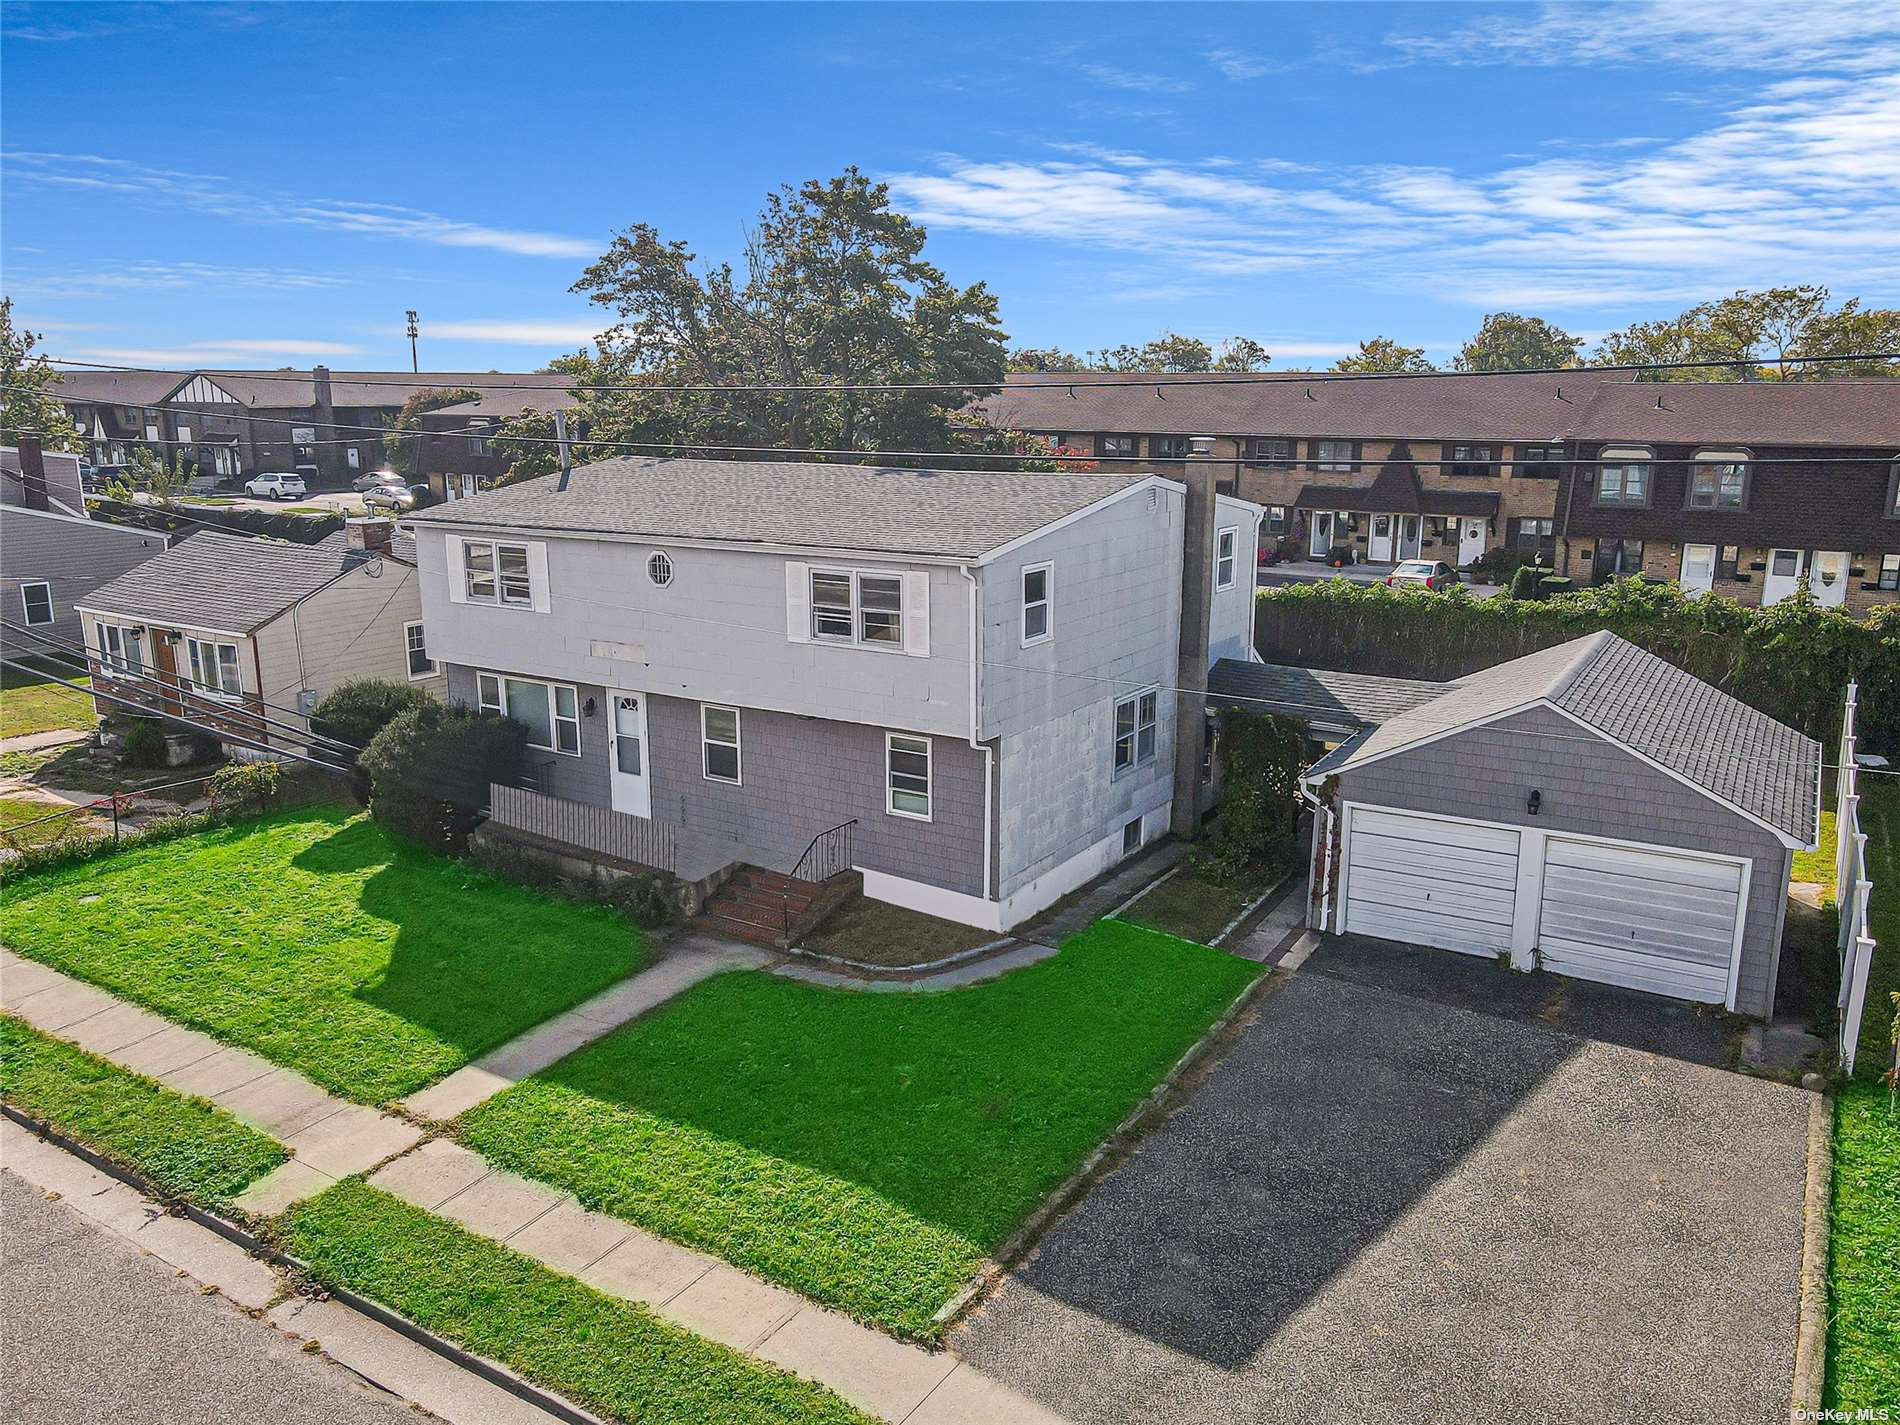 330 West Drive, Copiague, New York11726 | Residential For Sale